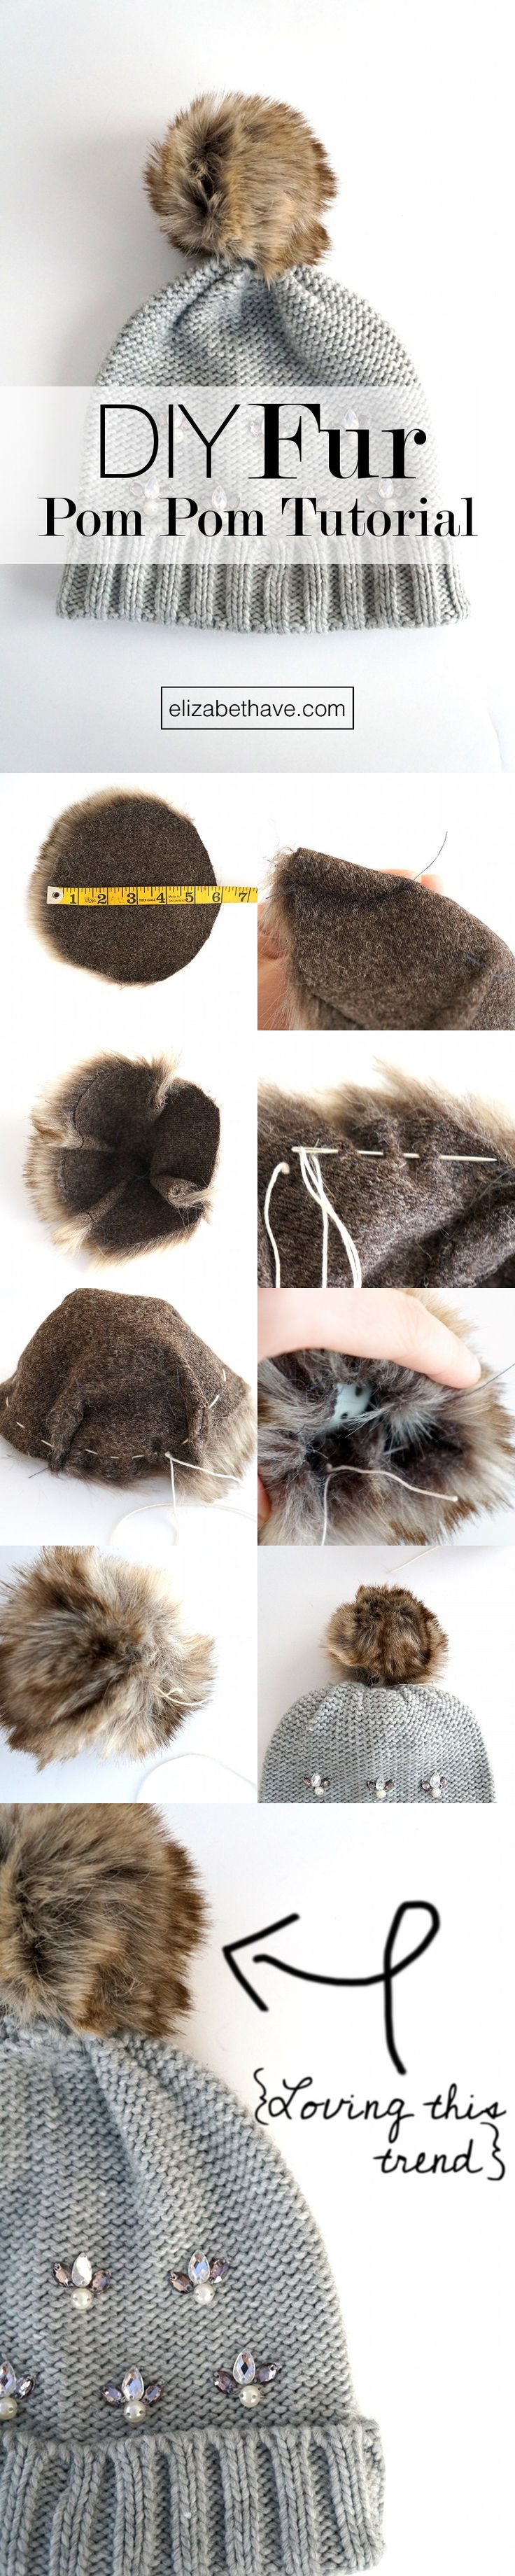 DIY Fur Pom Pom Tutorial